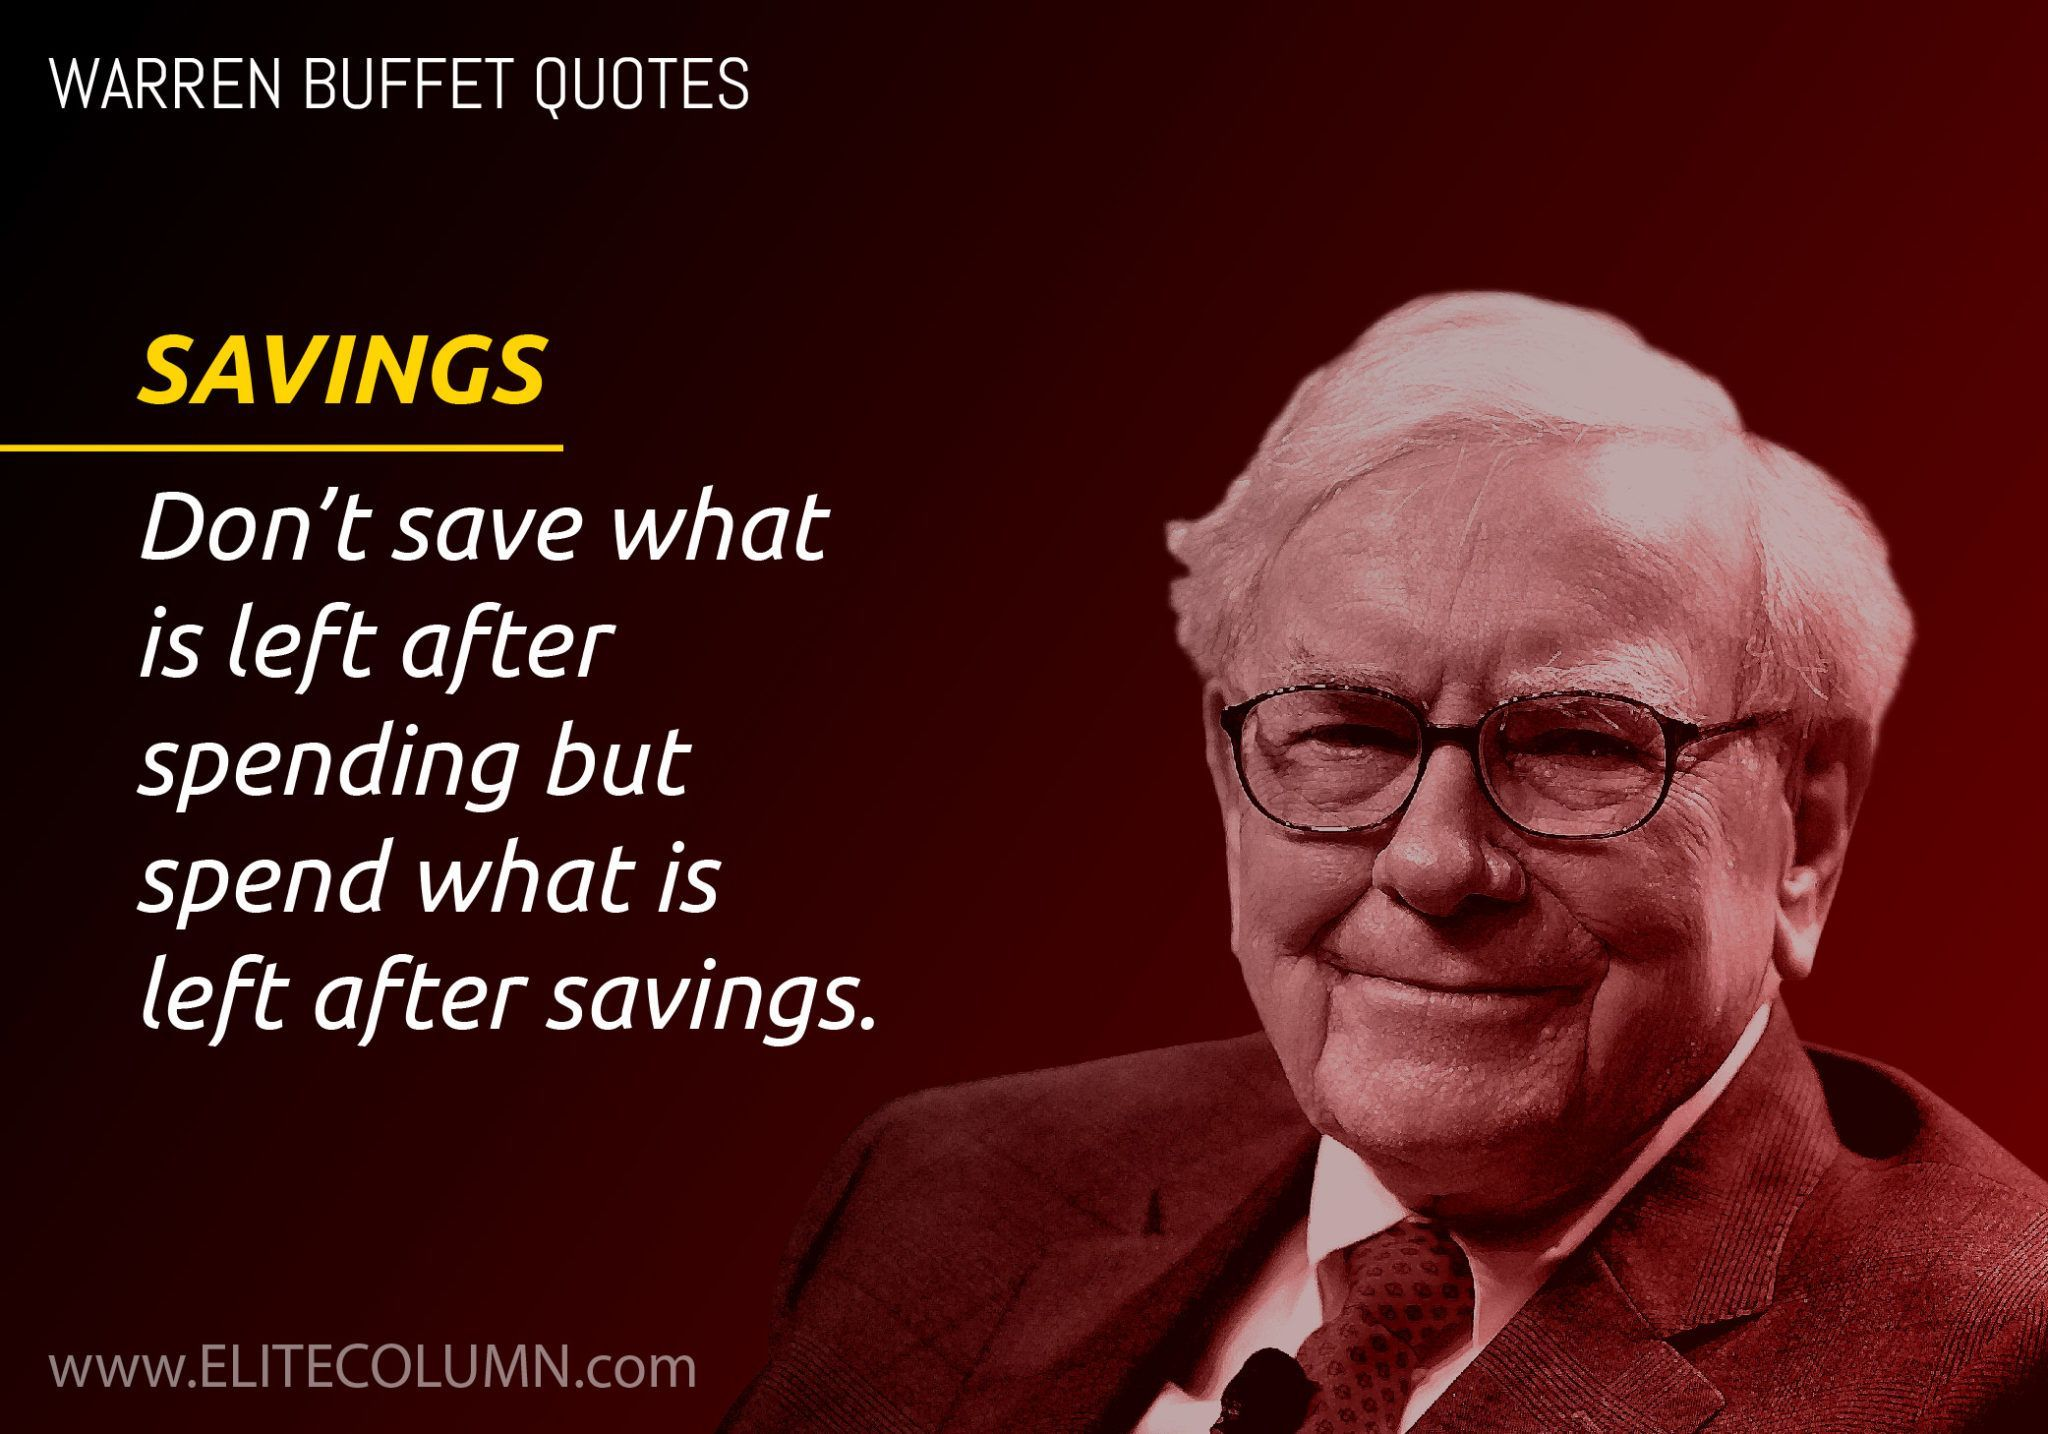 Warren Buffet Open Real Account And Win Profits Easy With My Programm Trading Number 1 Demo Here Http Metatrader4cfd Com Us